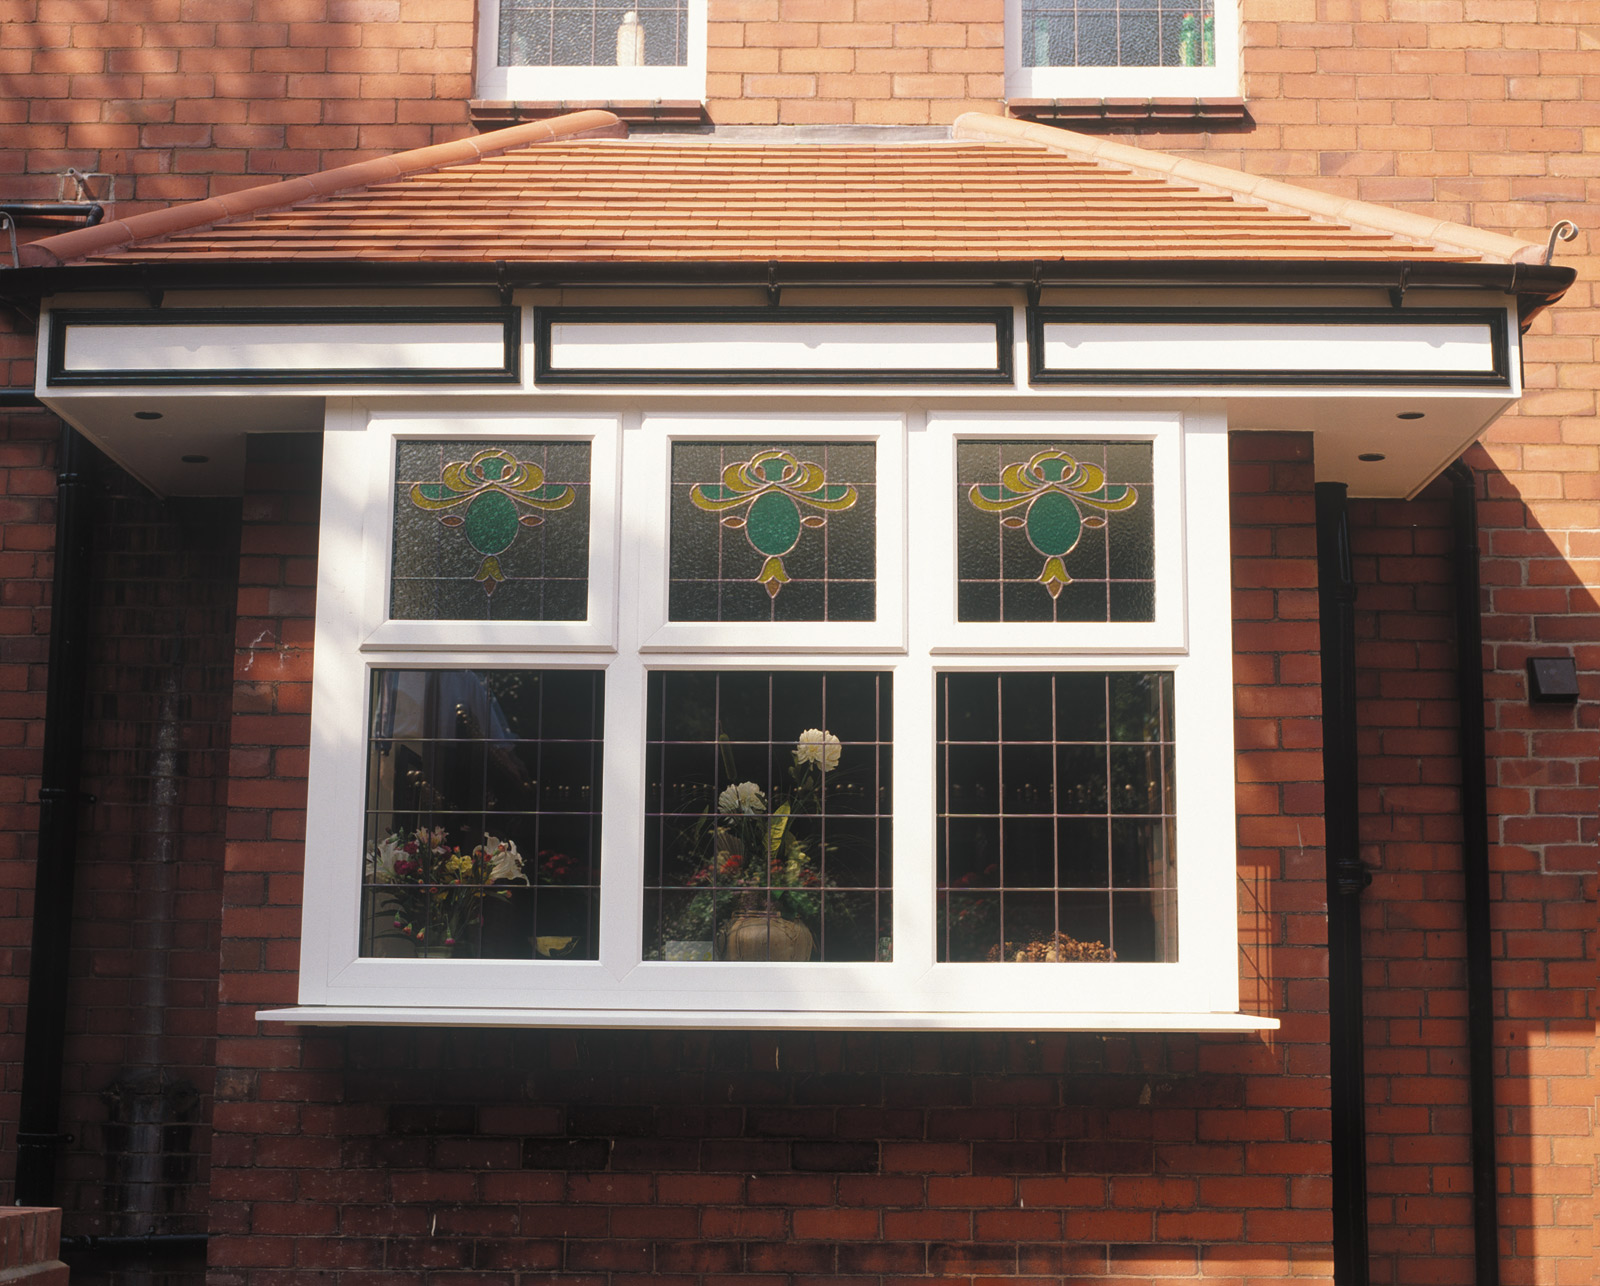 Buy rehau upvc windows and doors made in britain for Upvc windows and doors